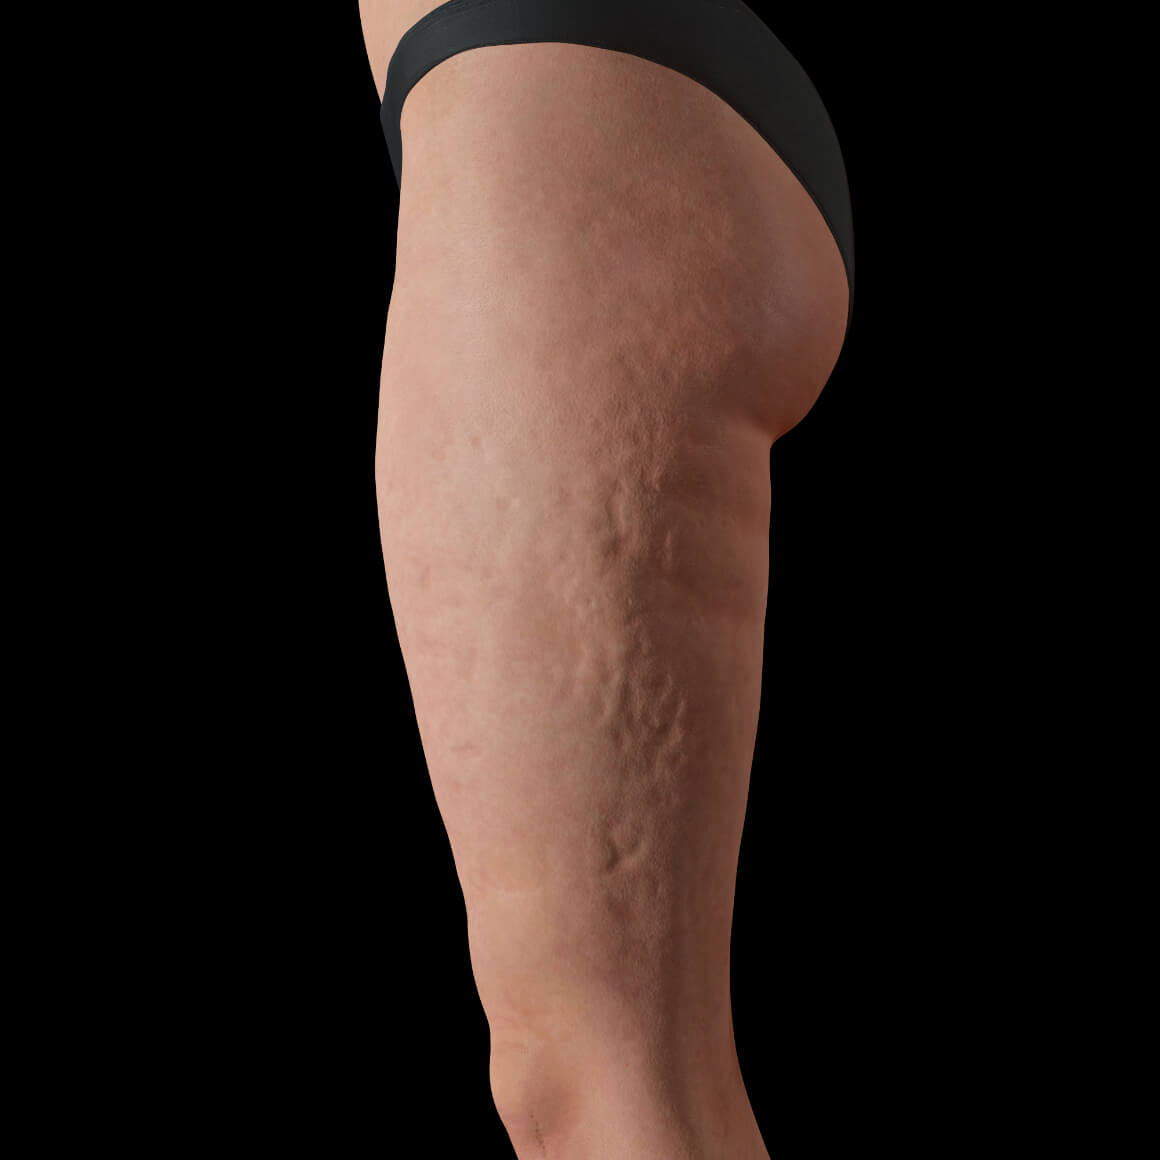 Female patient from Clinique Chloé positioned sideways showing cellulite on her thighs